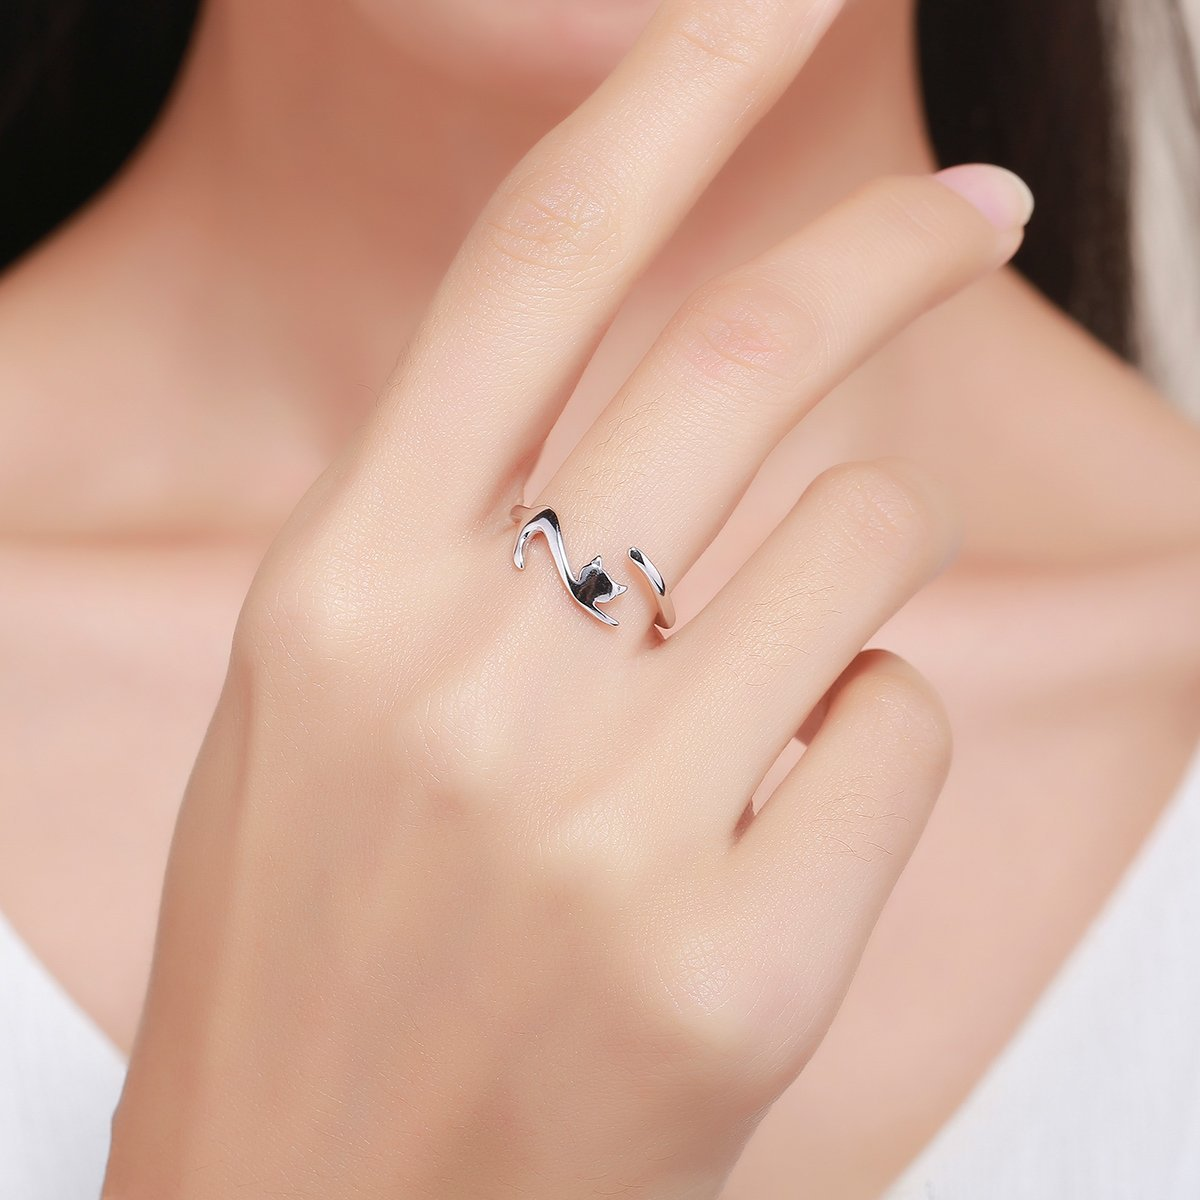 Forever Queen Cat Ring, 925 Sterling Silver Cute Kitty Sticky Cat Ring with Long Tail Opening Mouth Ring, Simple Wedding Finger Ring for Women Girls BJ09061 by Forever Queen (Image #5)